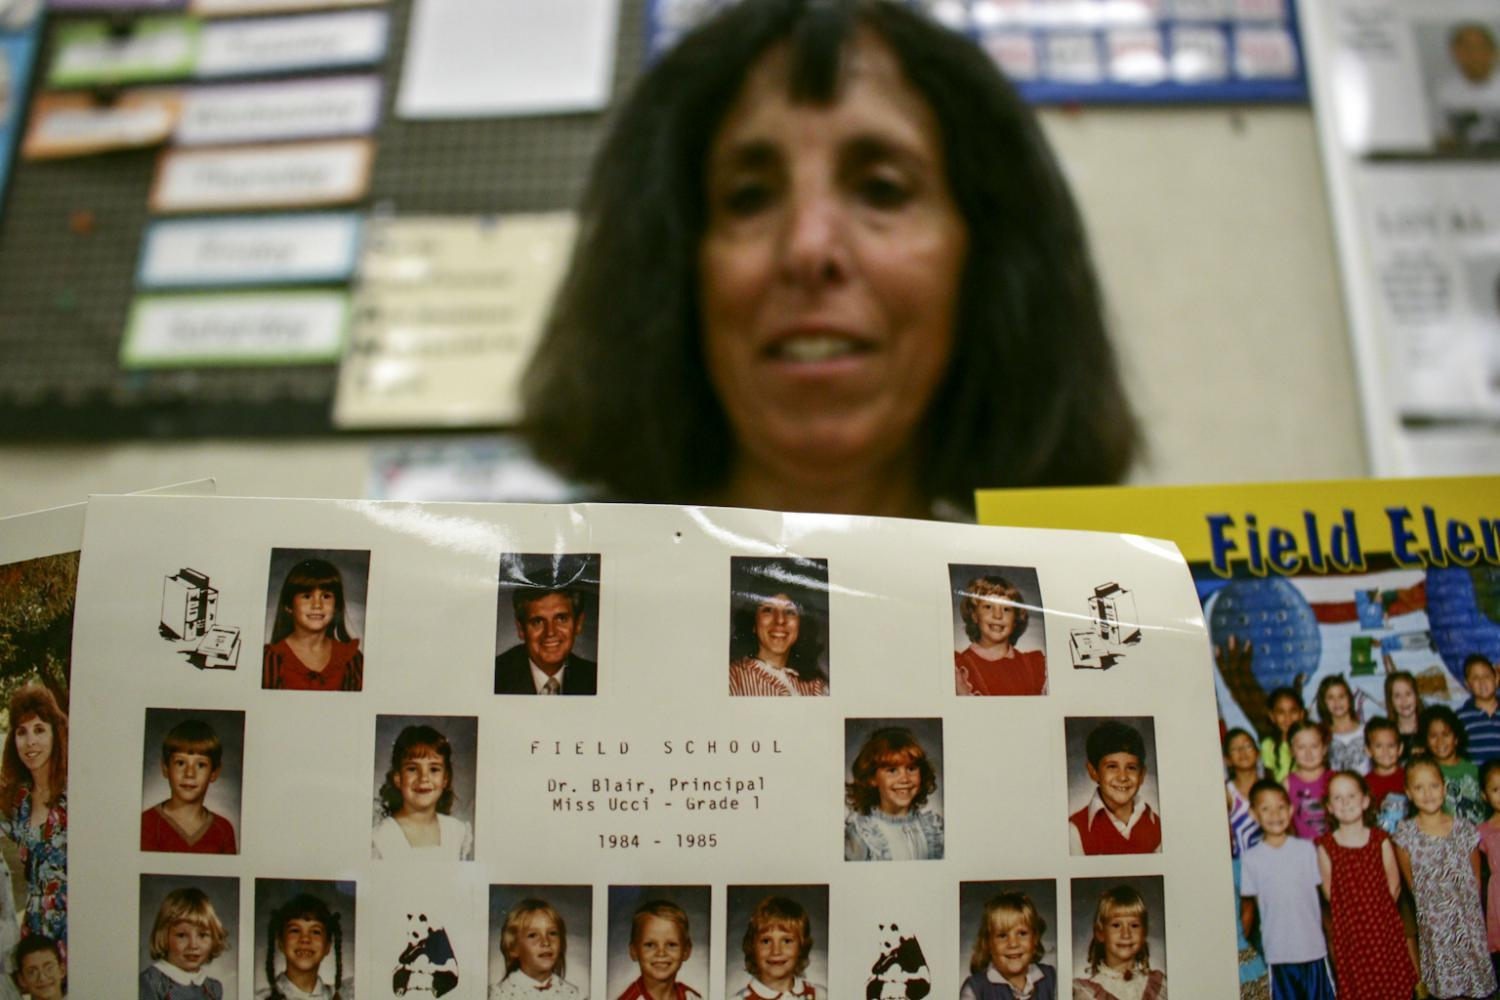 Ms. Ucci holds up a class picture from her first class at Field Elementary in 1984